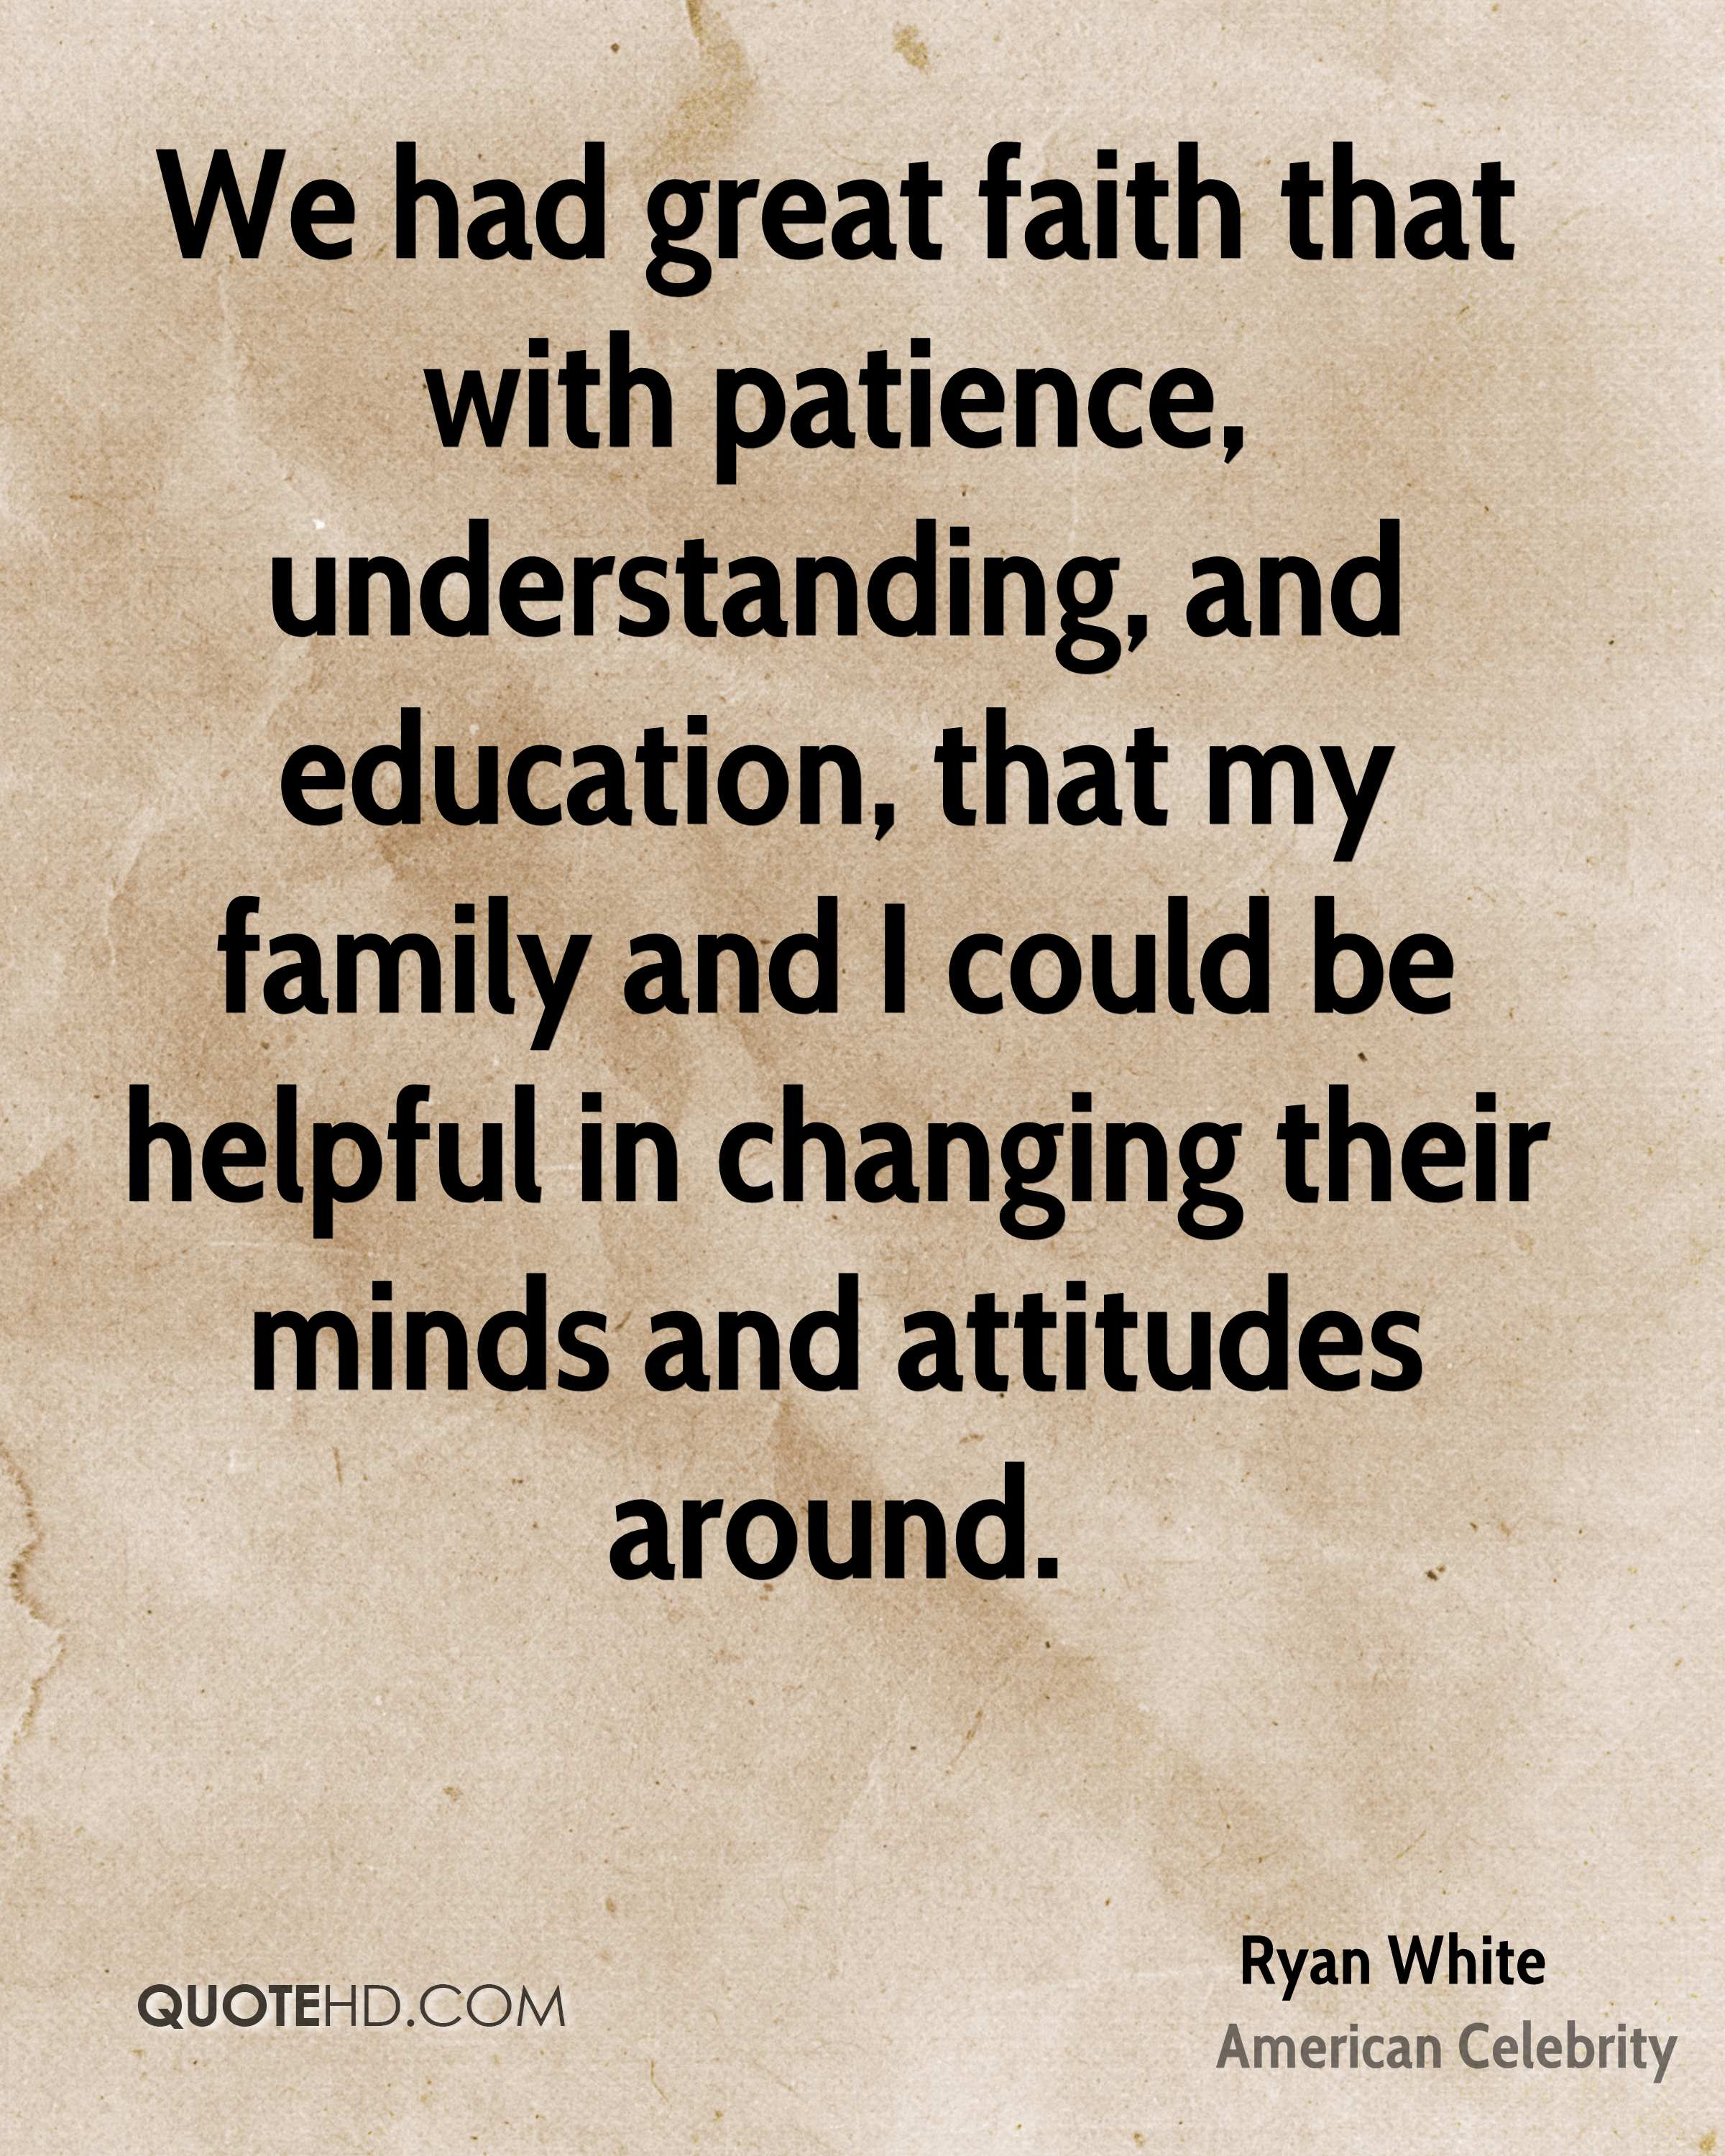 We had great faith that with patience, understanding, and education, that my family and I could be helpful in changing their minds and attitudes around.